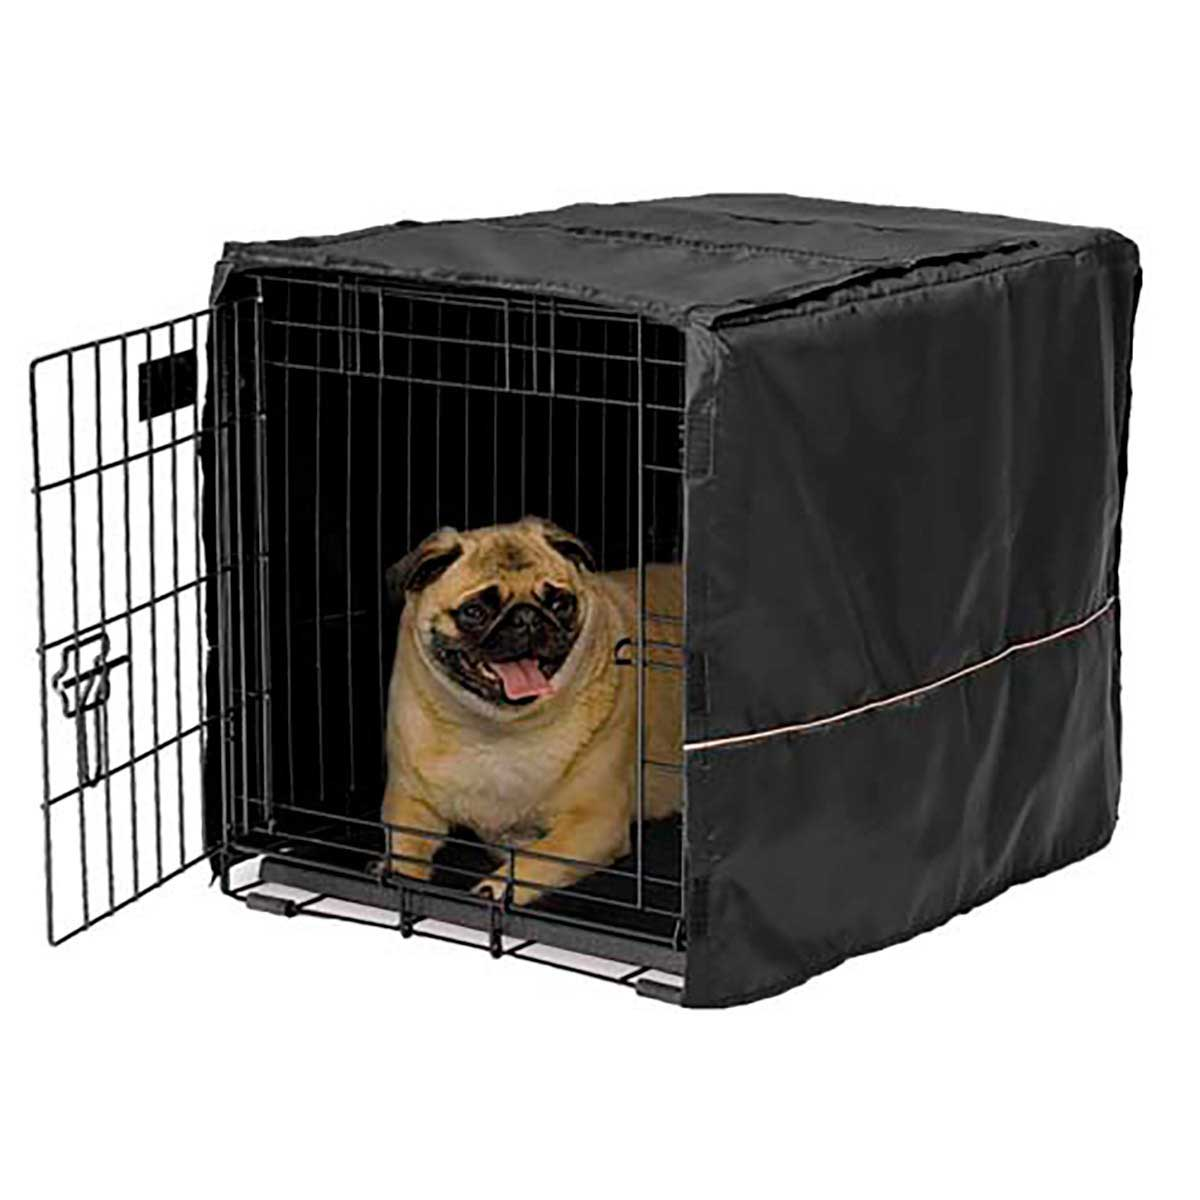 Quiet Time Dog Crate Covers - Fits 24 inch Crates